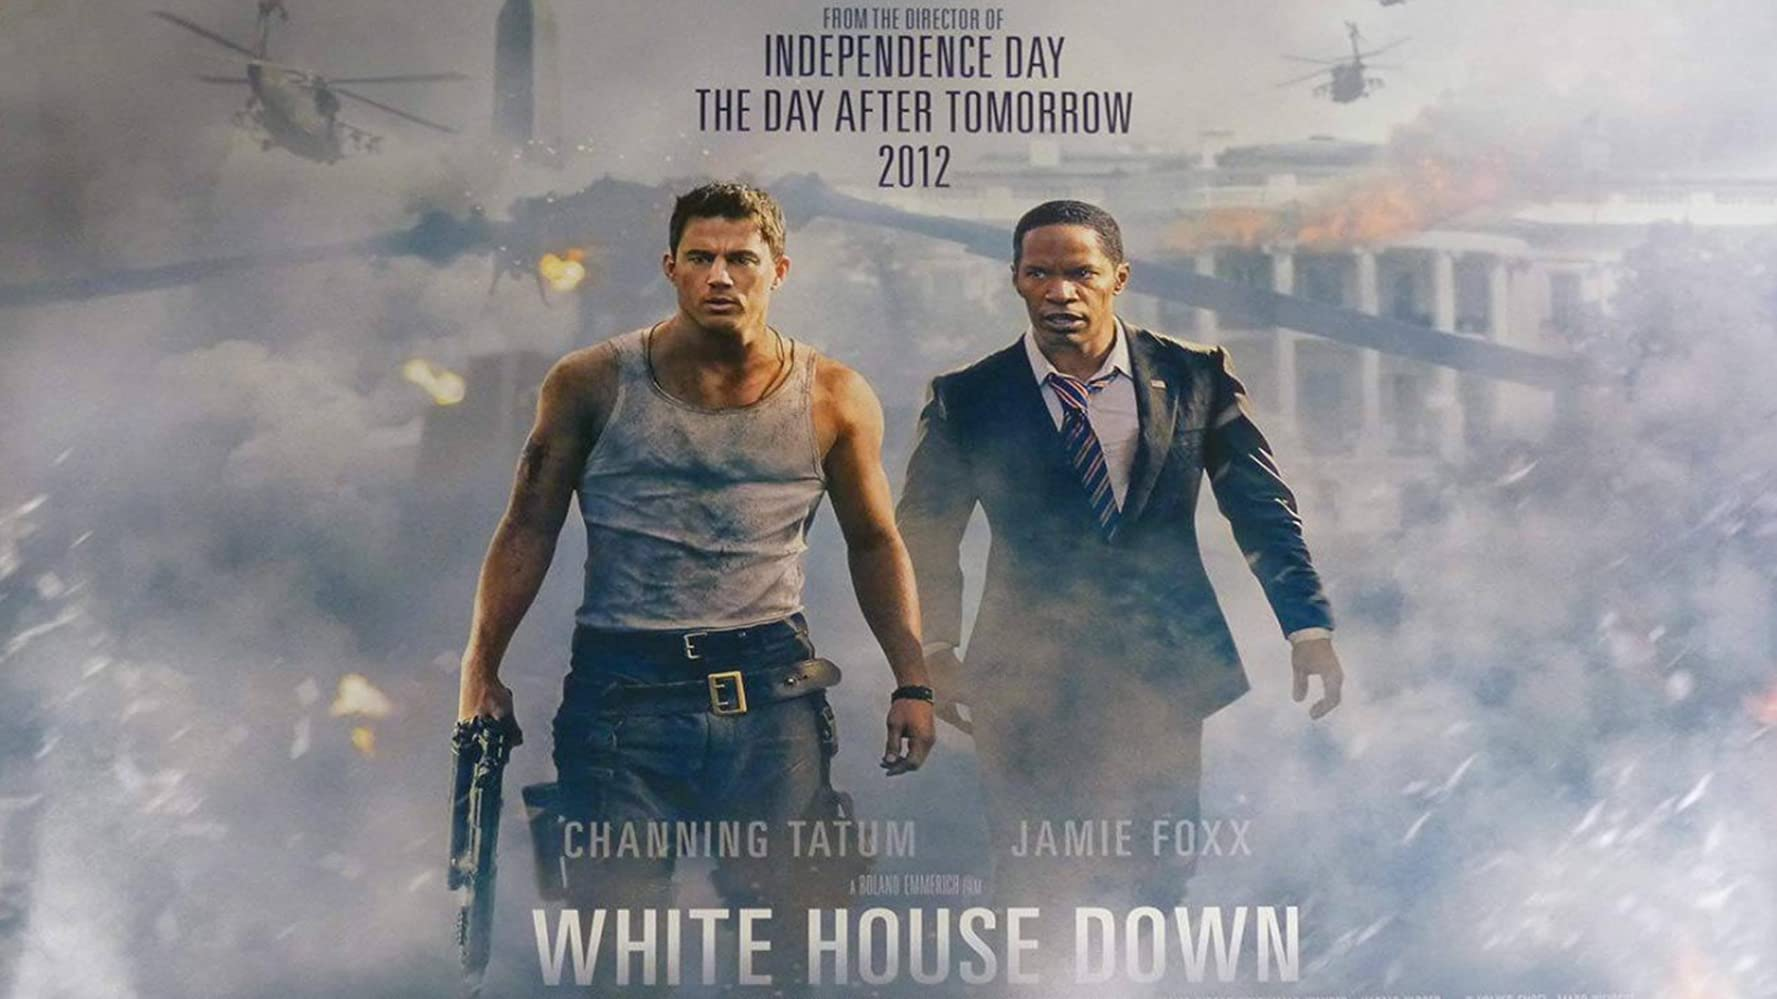 White House Down (2013) 1080p 720p BluRay Dual Audio [Hindi DD5.1 + English DD5.1] -Recmnd